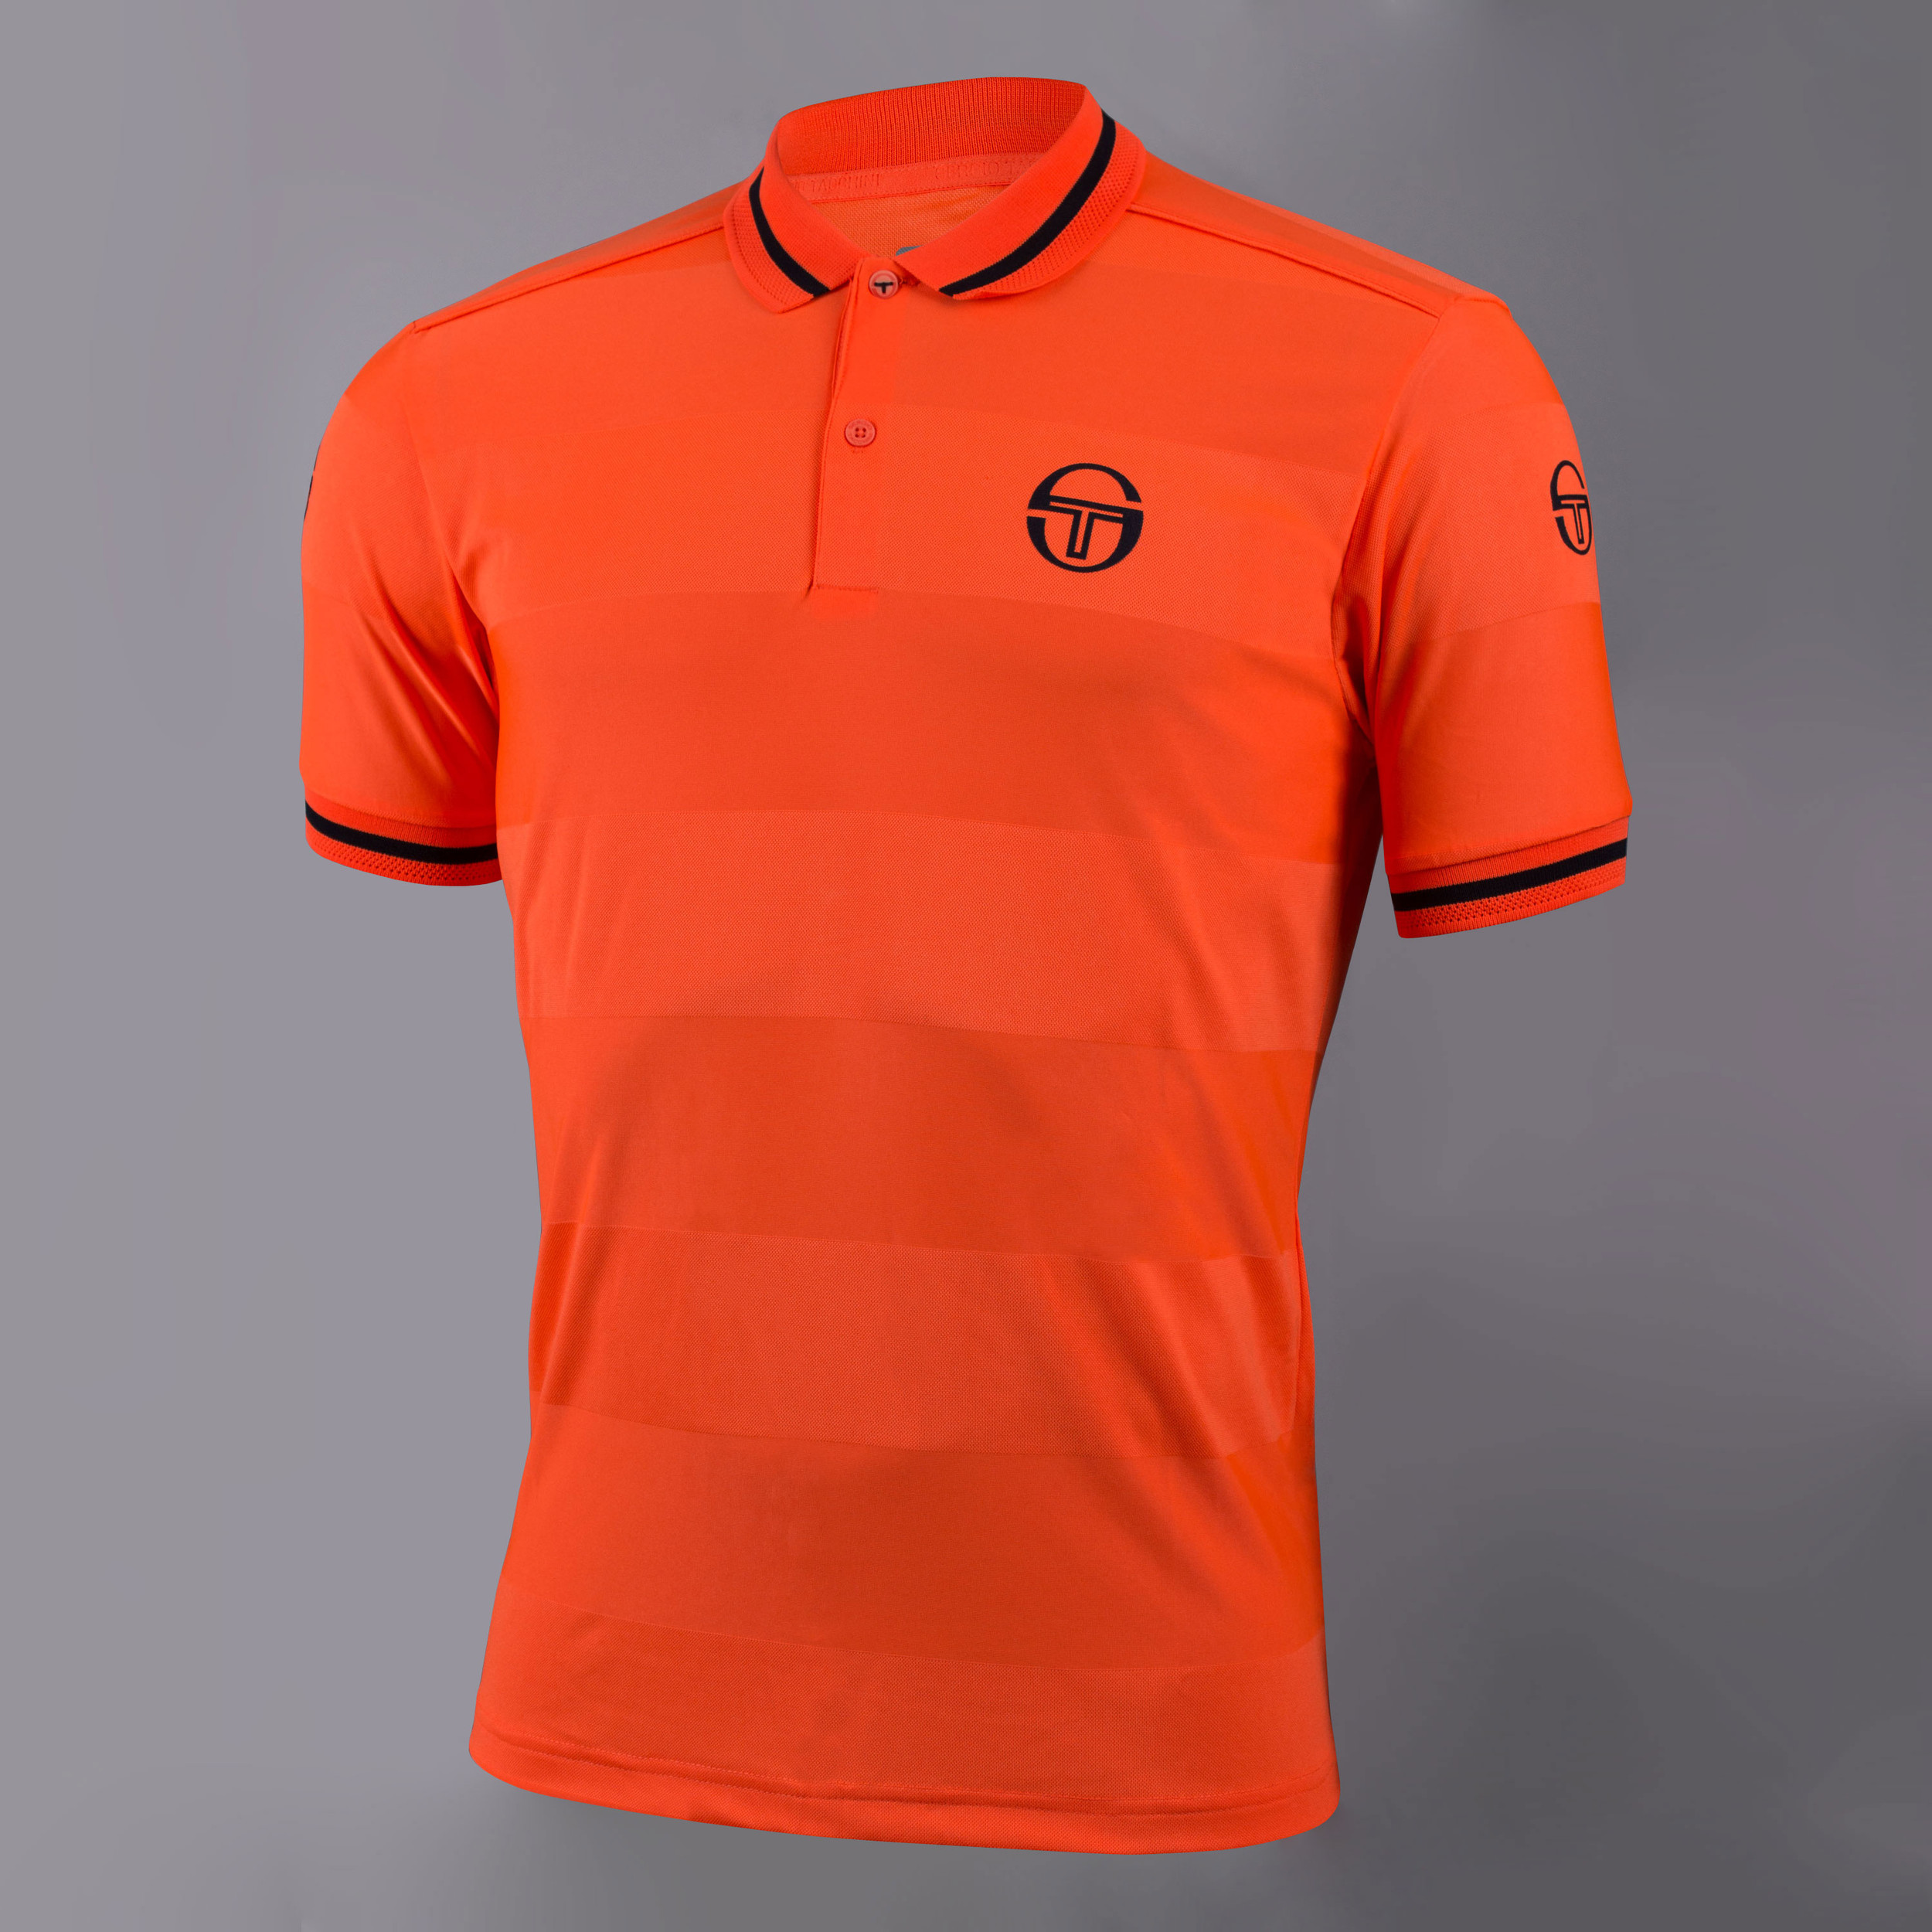 222cfd5d153 Details about Sergio Tacchini Mens Retro Polo Orange Sports Tennis  Breathable Lightweight